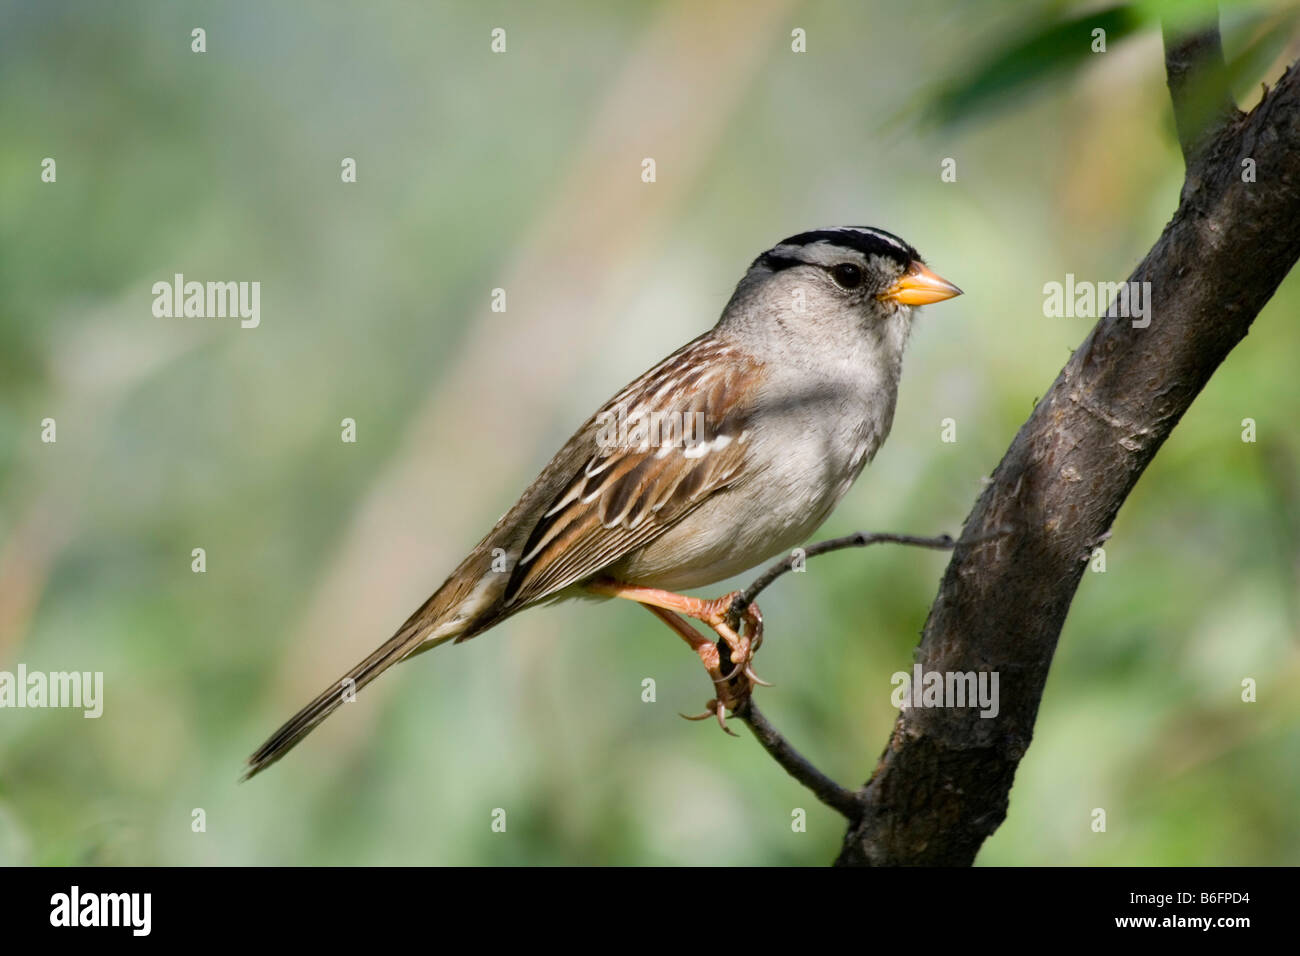 White-crowned Sparrow (Zonotrichia leucophrys), Yukon Territory, Canada, North America - Stock Image